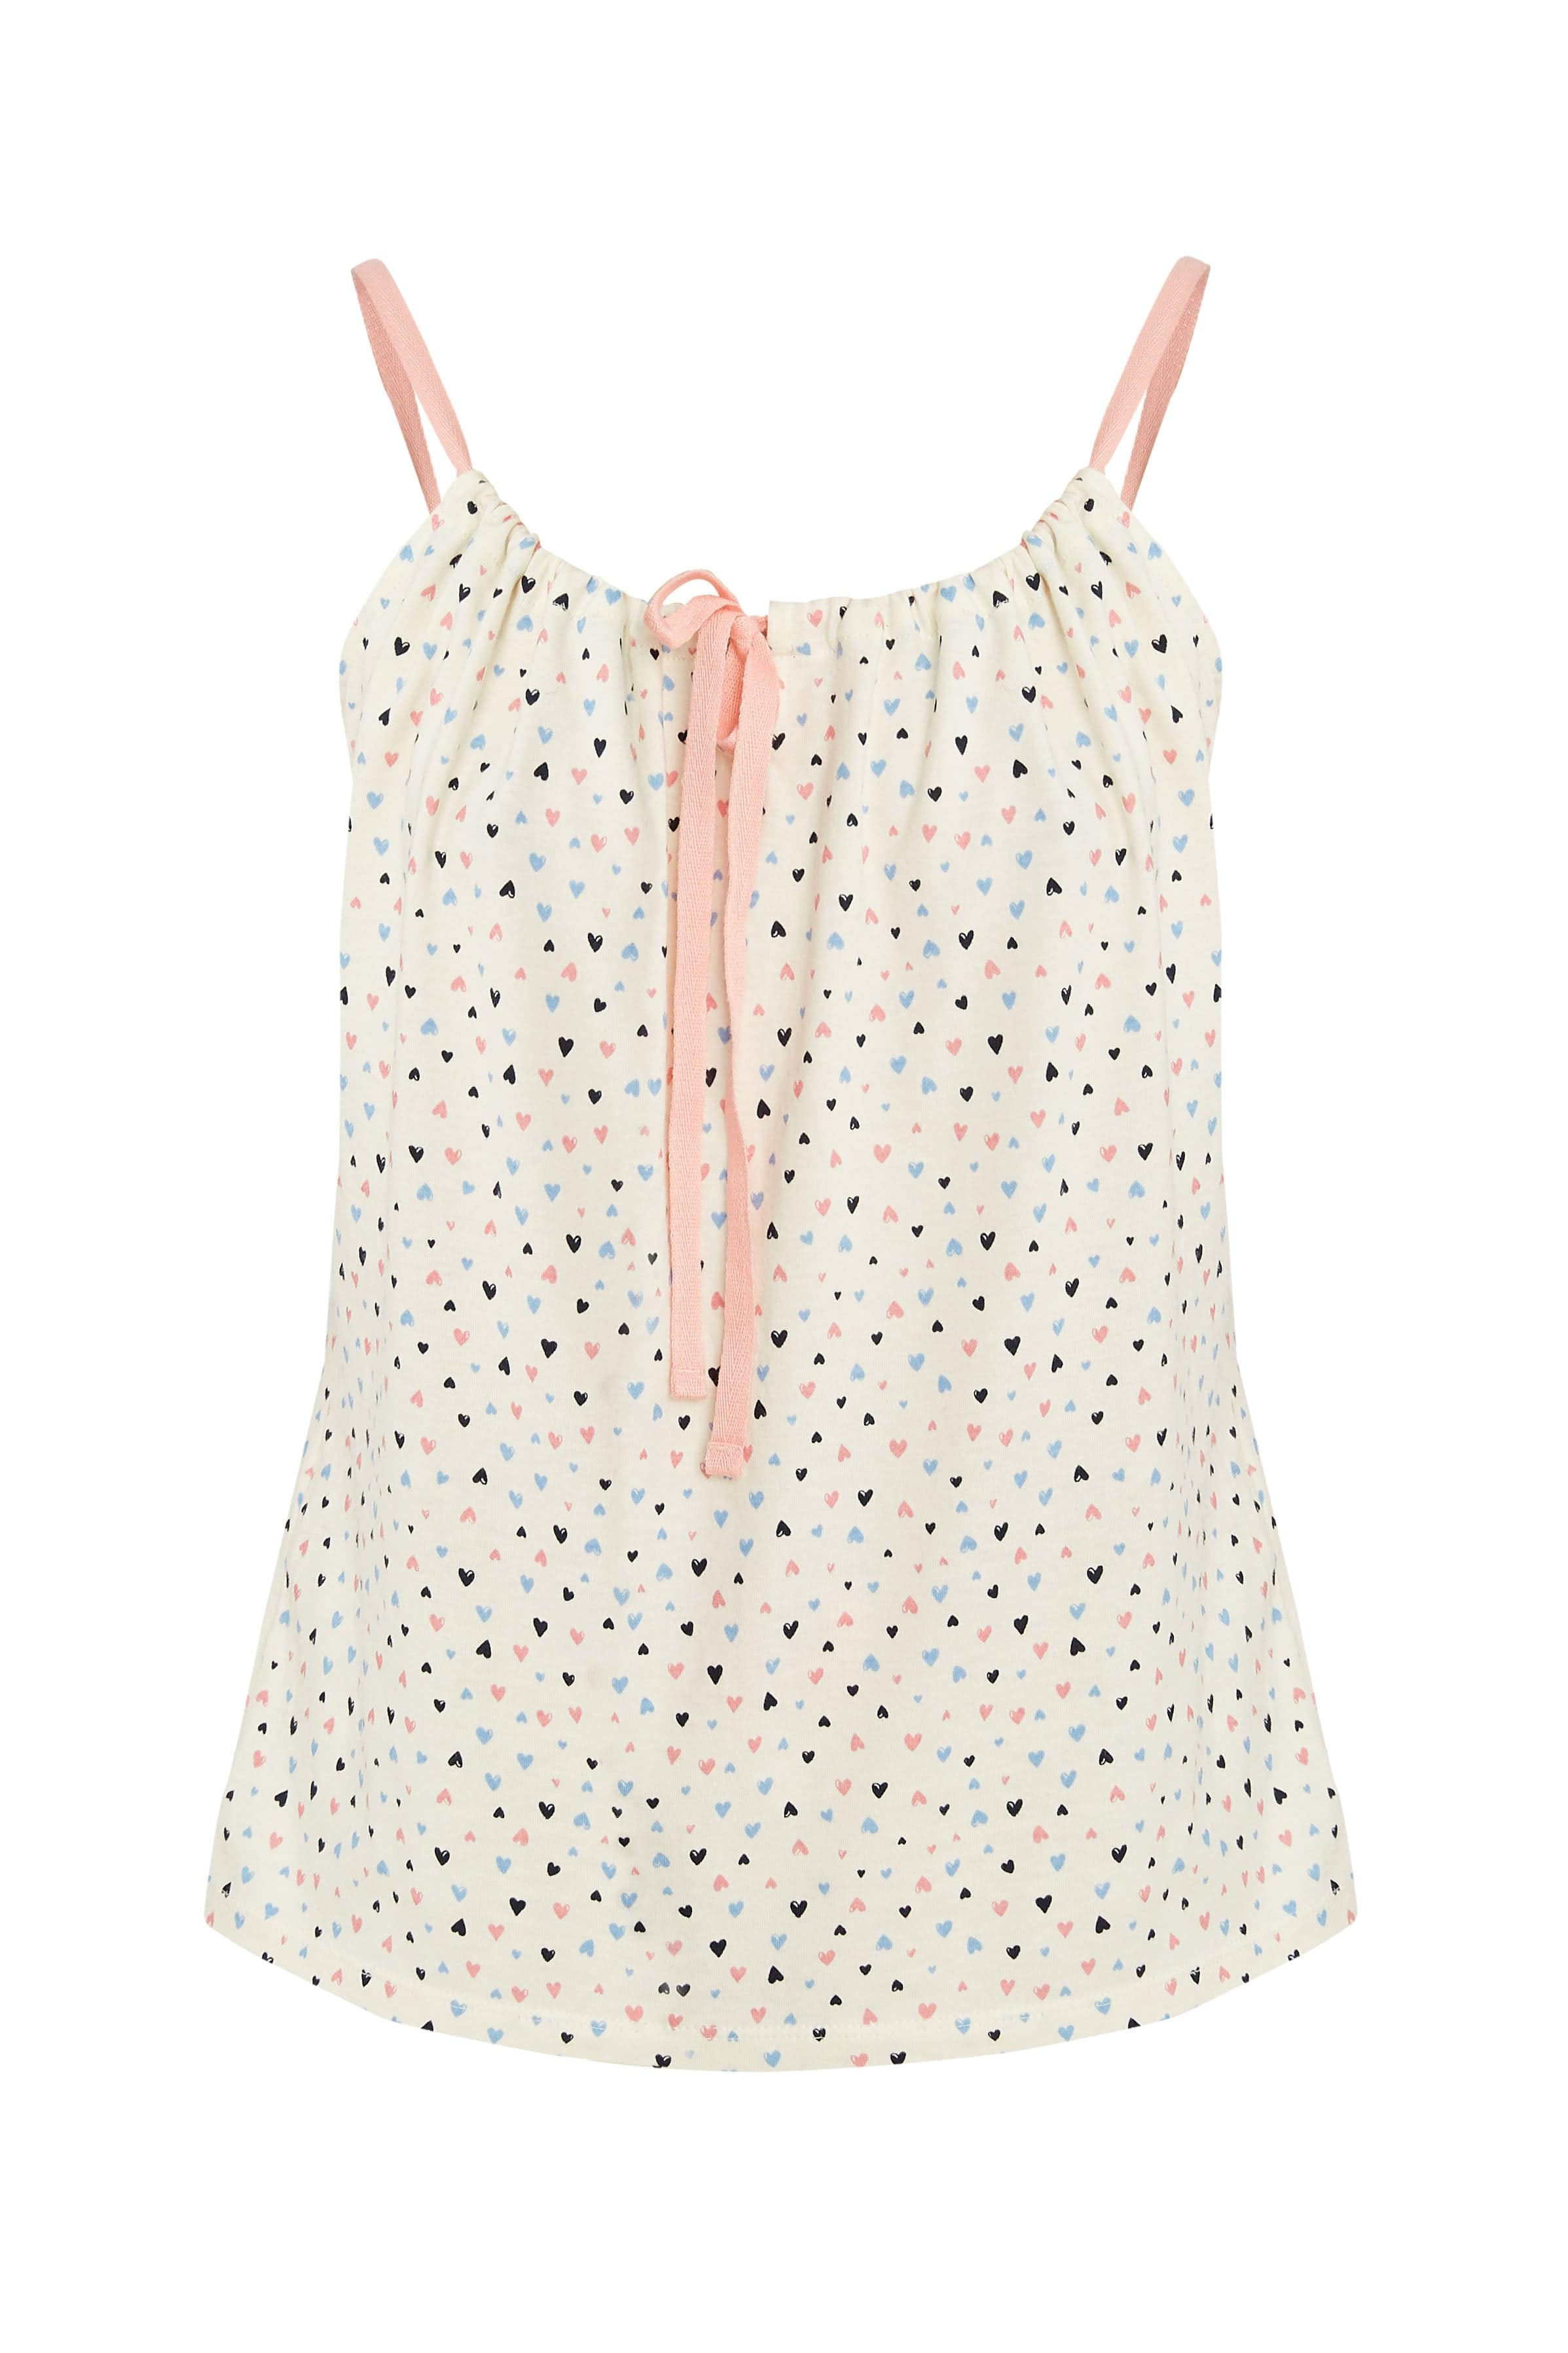 Heart Print Camisole-Nightwear-Sancho's Dress